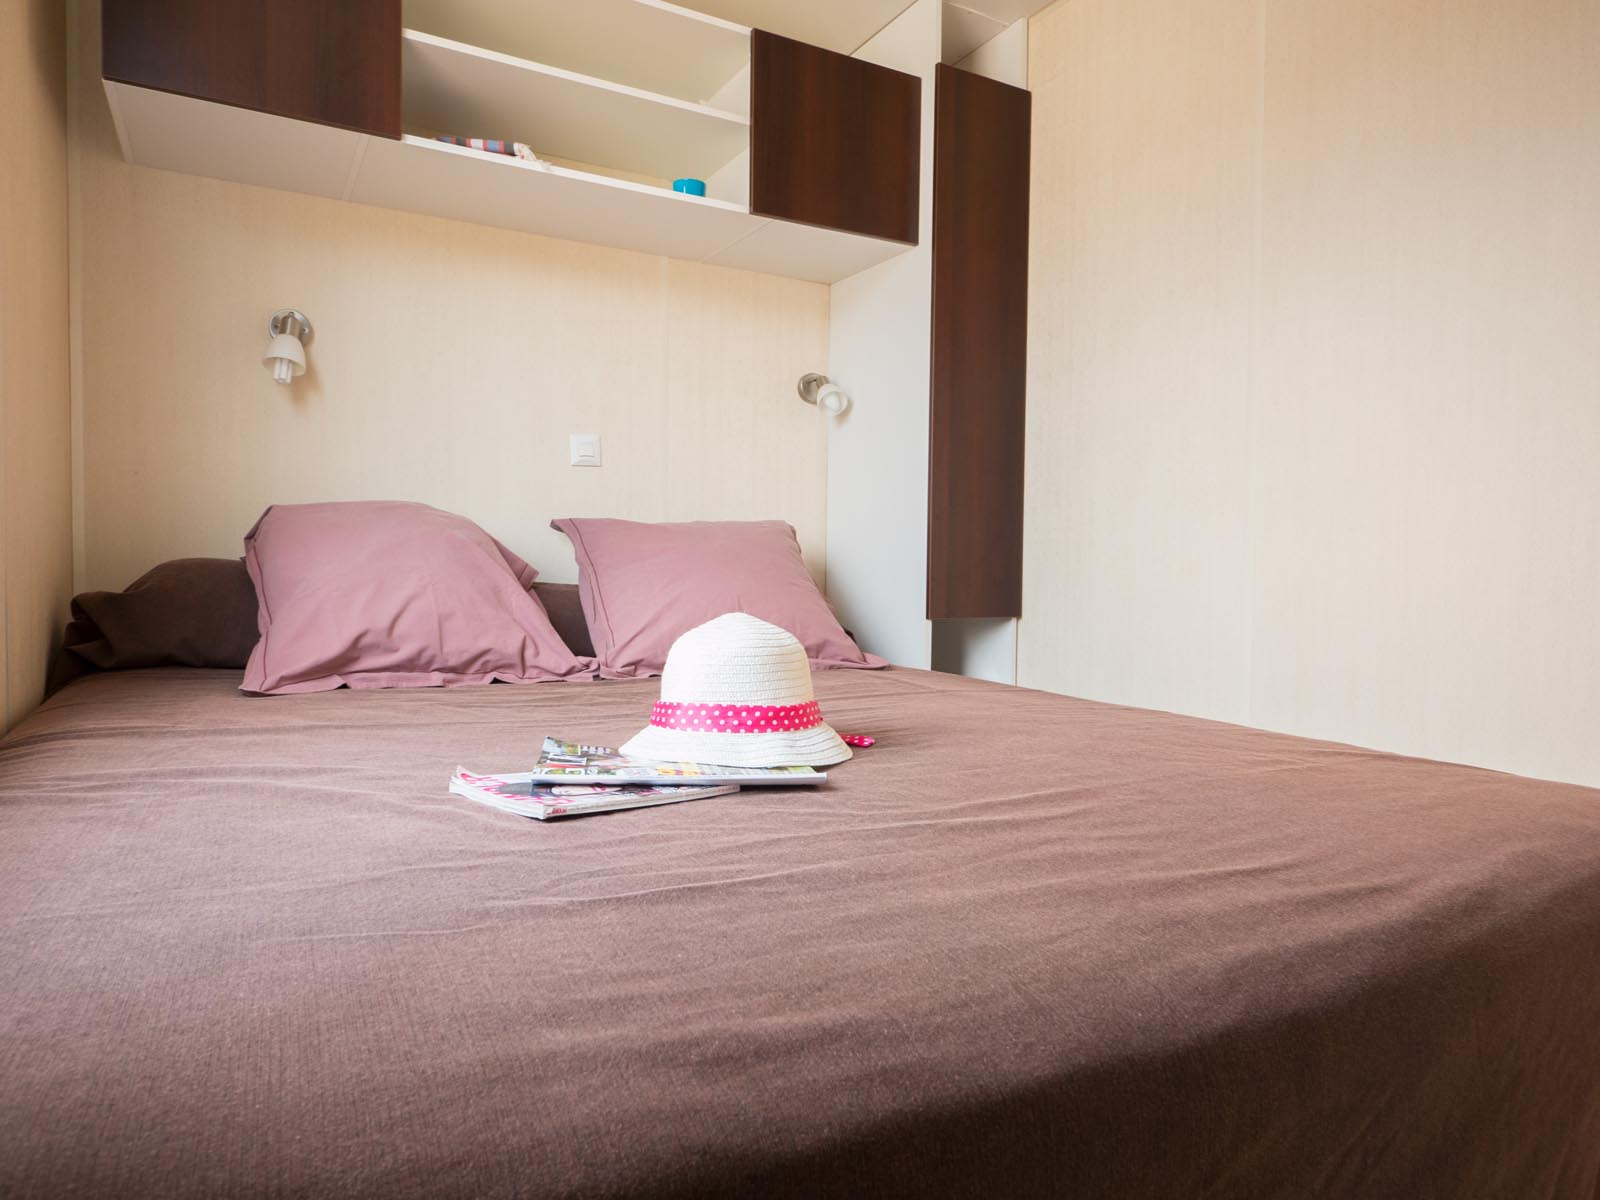 Chambre double dans mobilhome